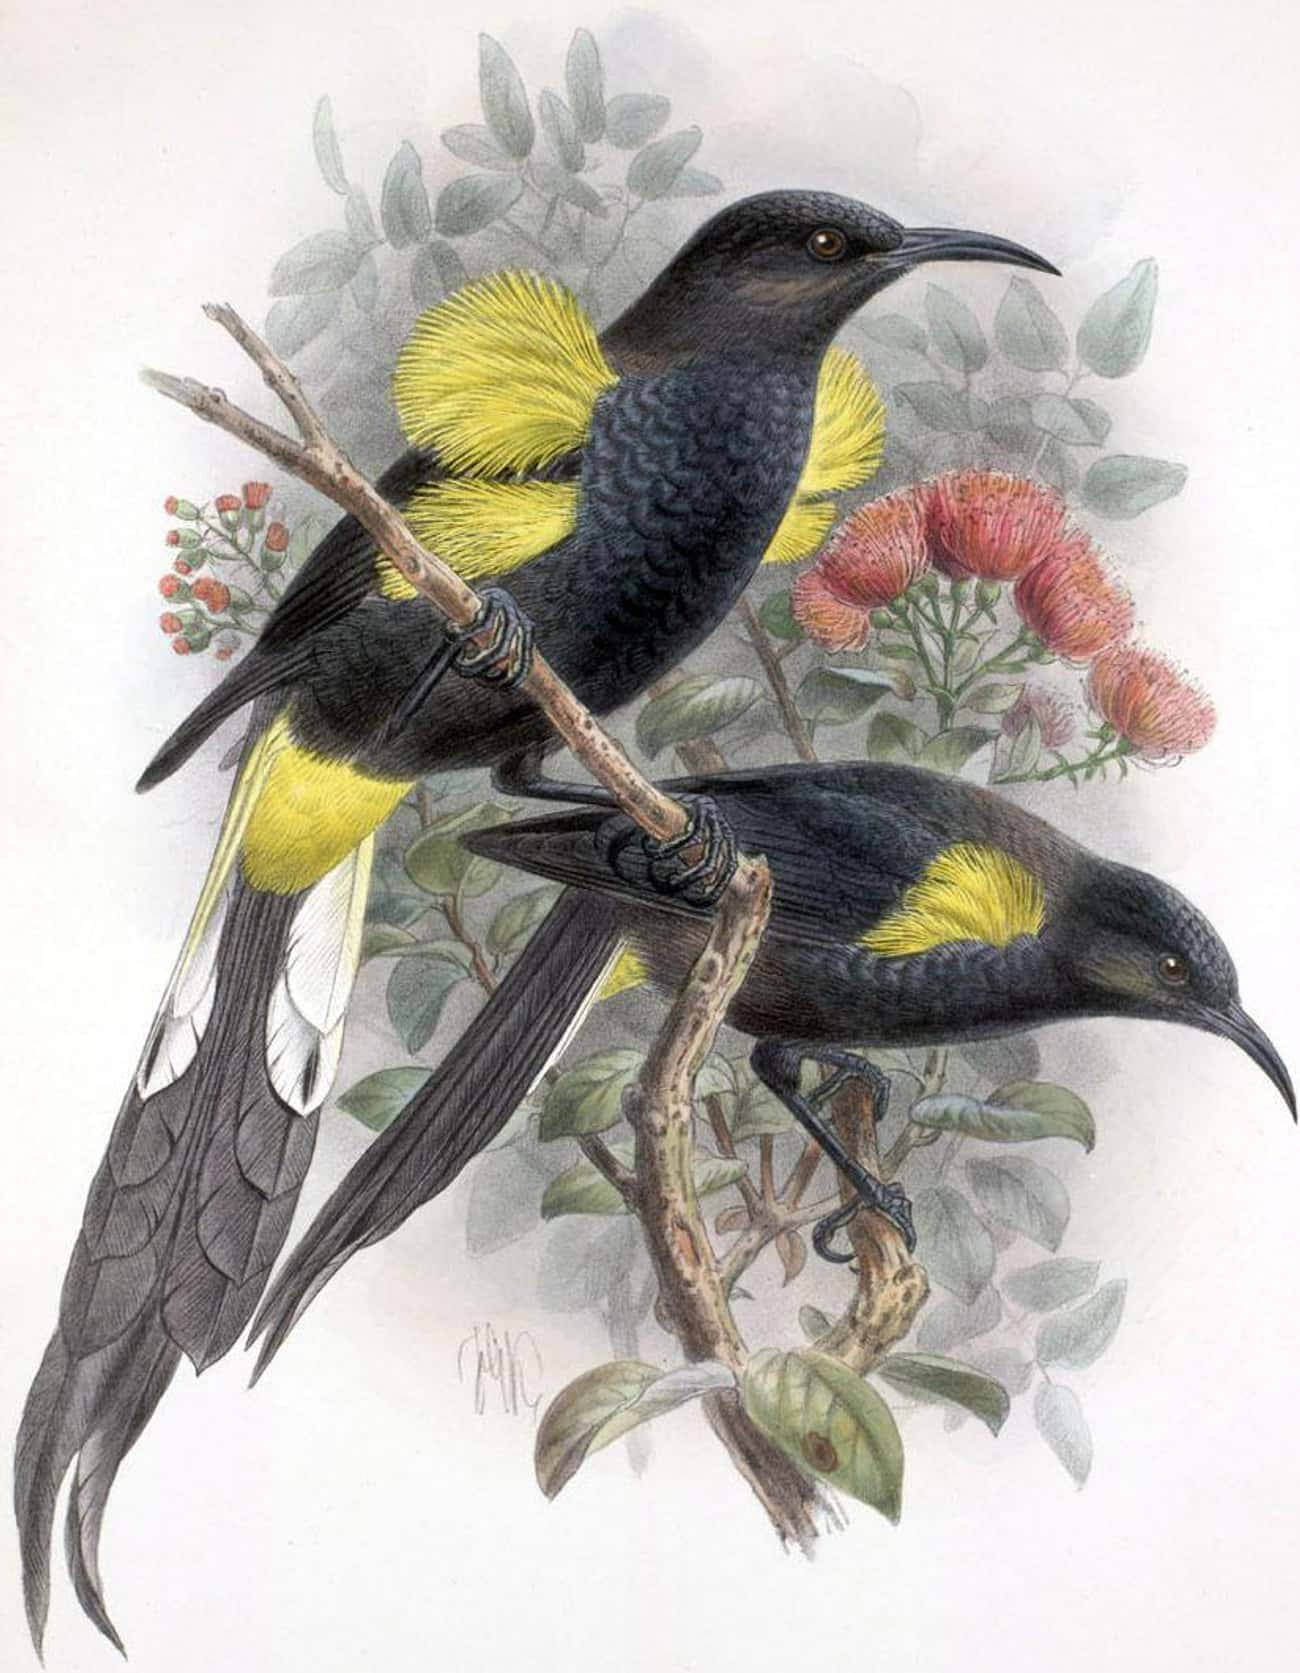 Hawaiʻi ʻōʻō is listed (or ranked) 2 on the list List Of Extinct Birds, From Prehistoric Times To Now